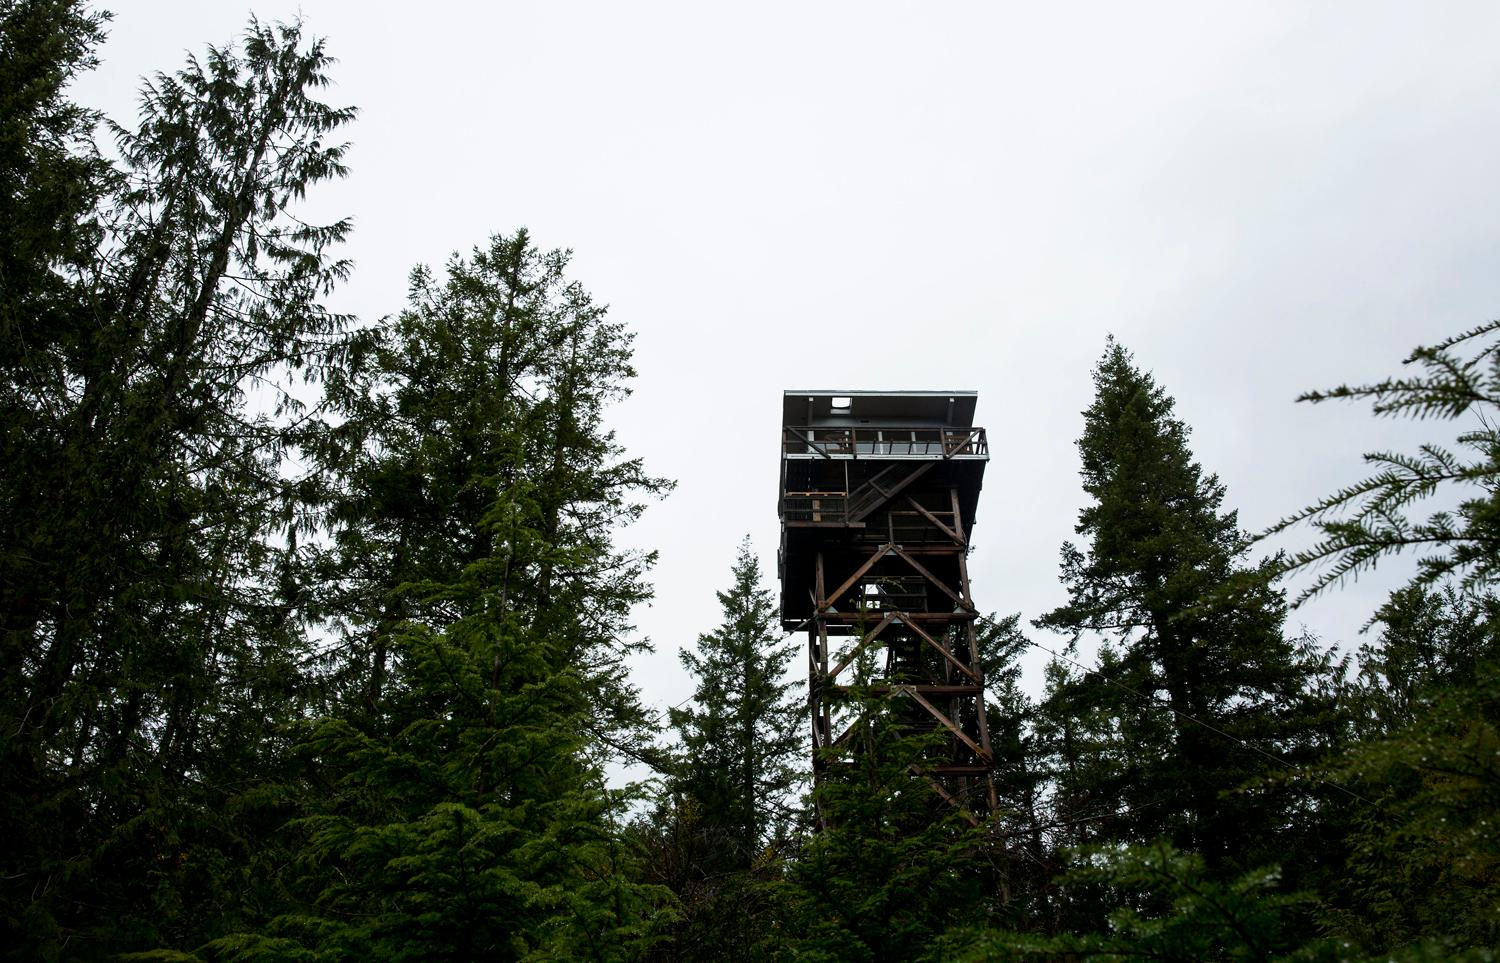 The Heybrook Lookout Tower hike is a short, moderately steep 2.6 mile there-and-back hike with 850 feet of elevation gain and sweeping views of the Cascades. After a climb through moss covered forests, the reward is an incredible view of Baring Mountain. Filson, the clothing company, recently partnered with the National Forest Foundation to renovate the tower and is now one of two lookout towers in Washington state available to reserve through recreation.gov. (Sy Bean / Seattle Refined)